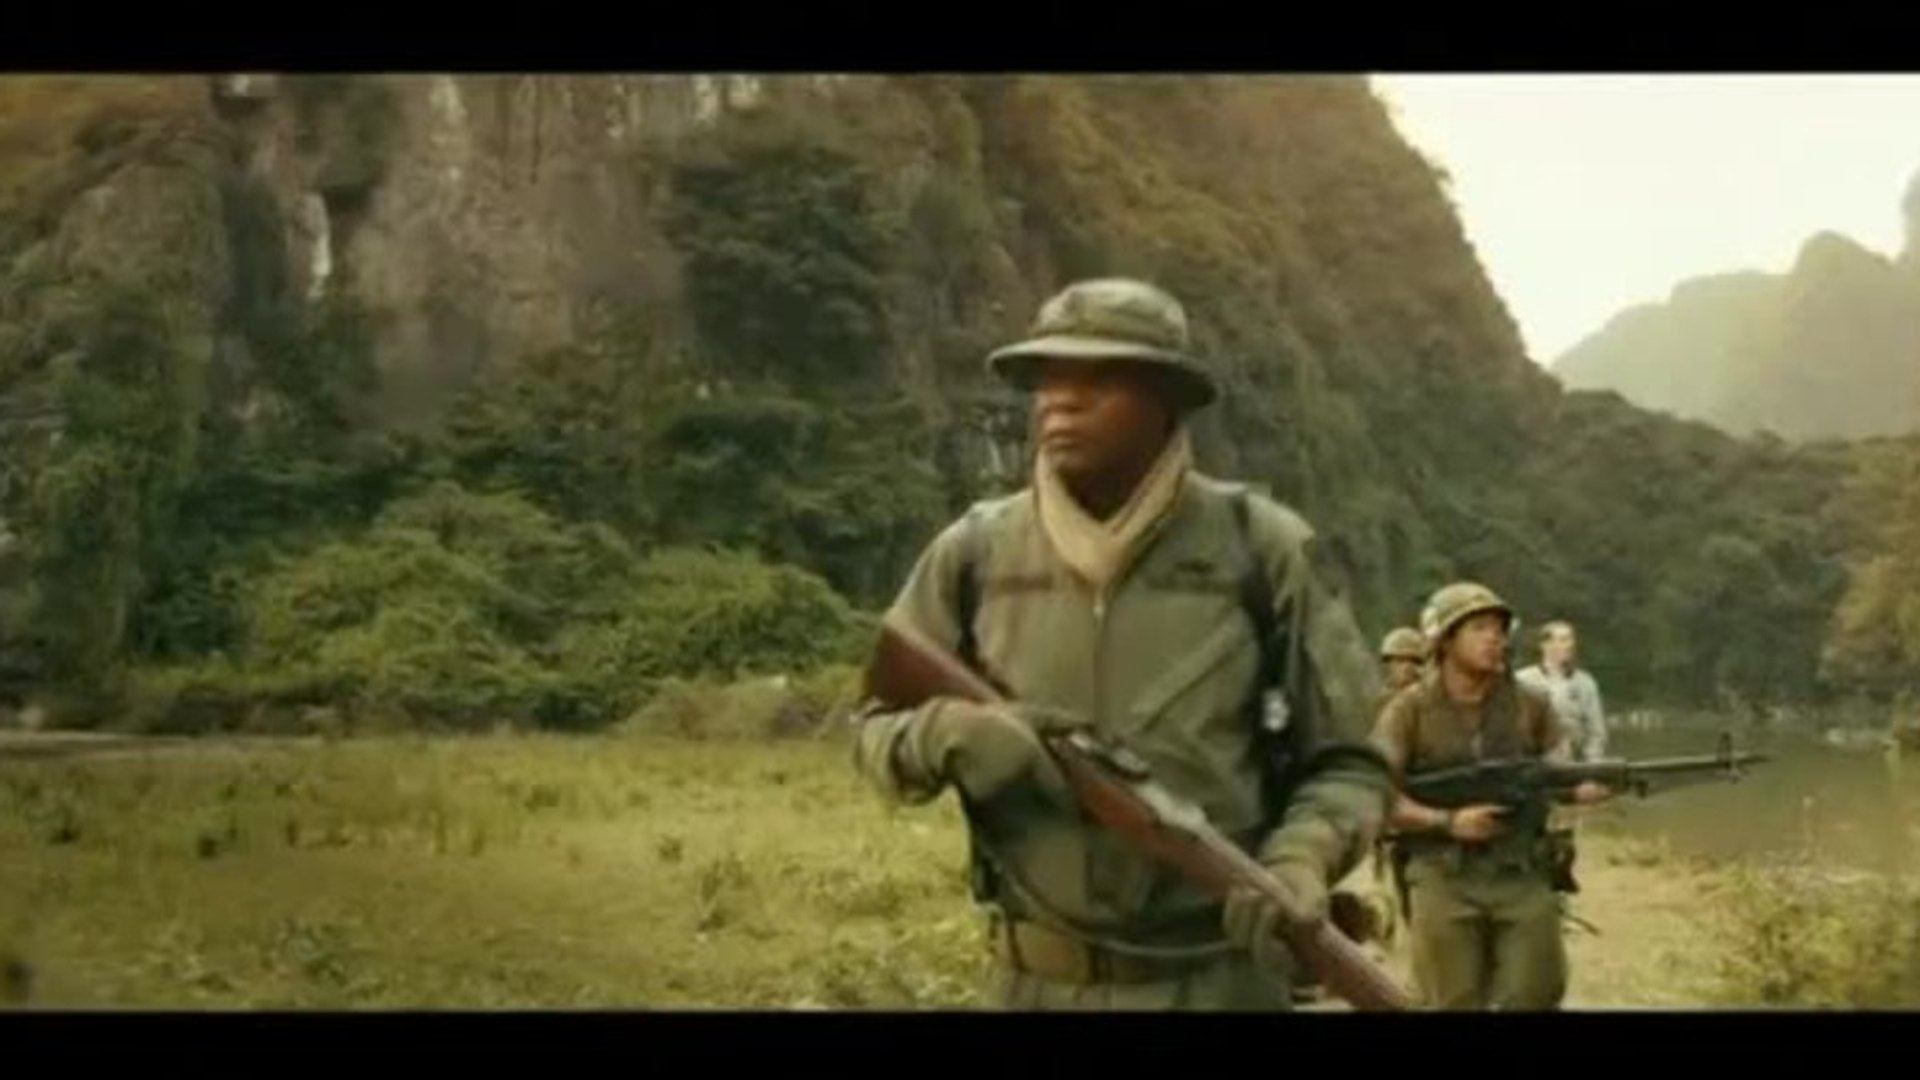 Early Reviews For 'Kong: Skull Island' Are Positive